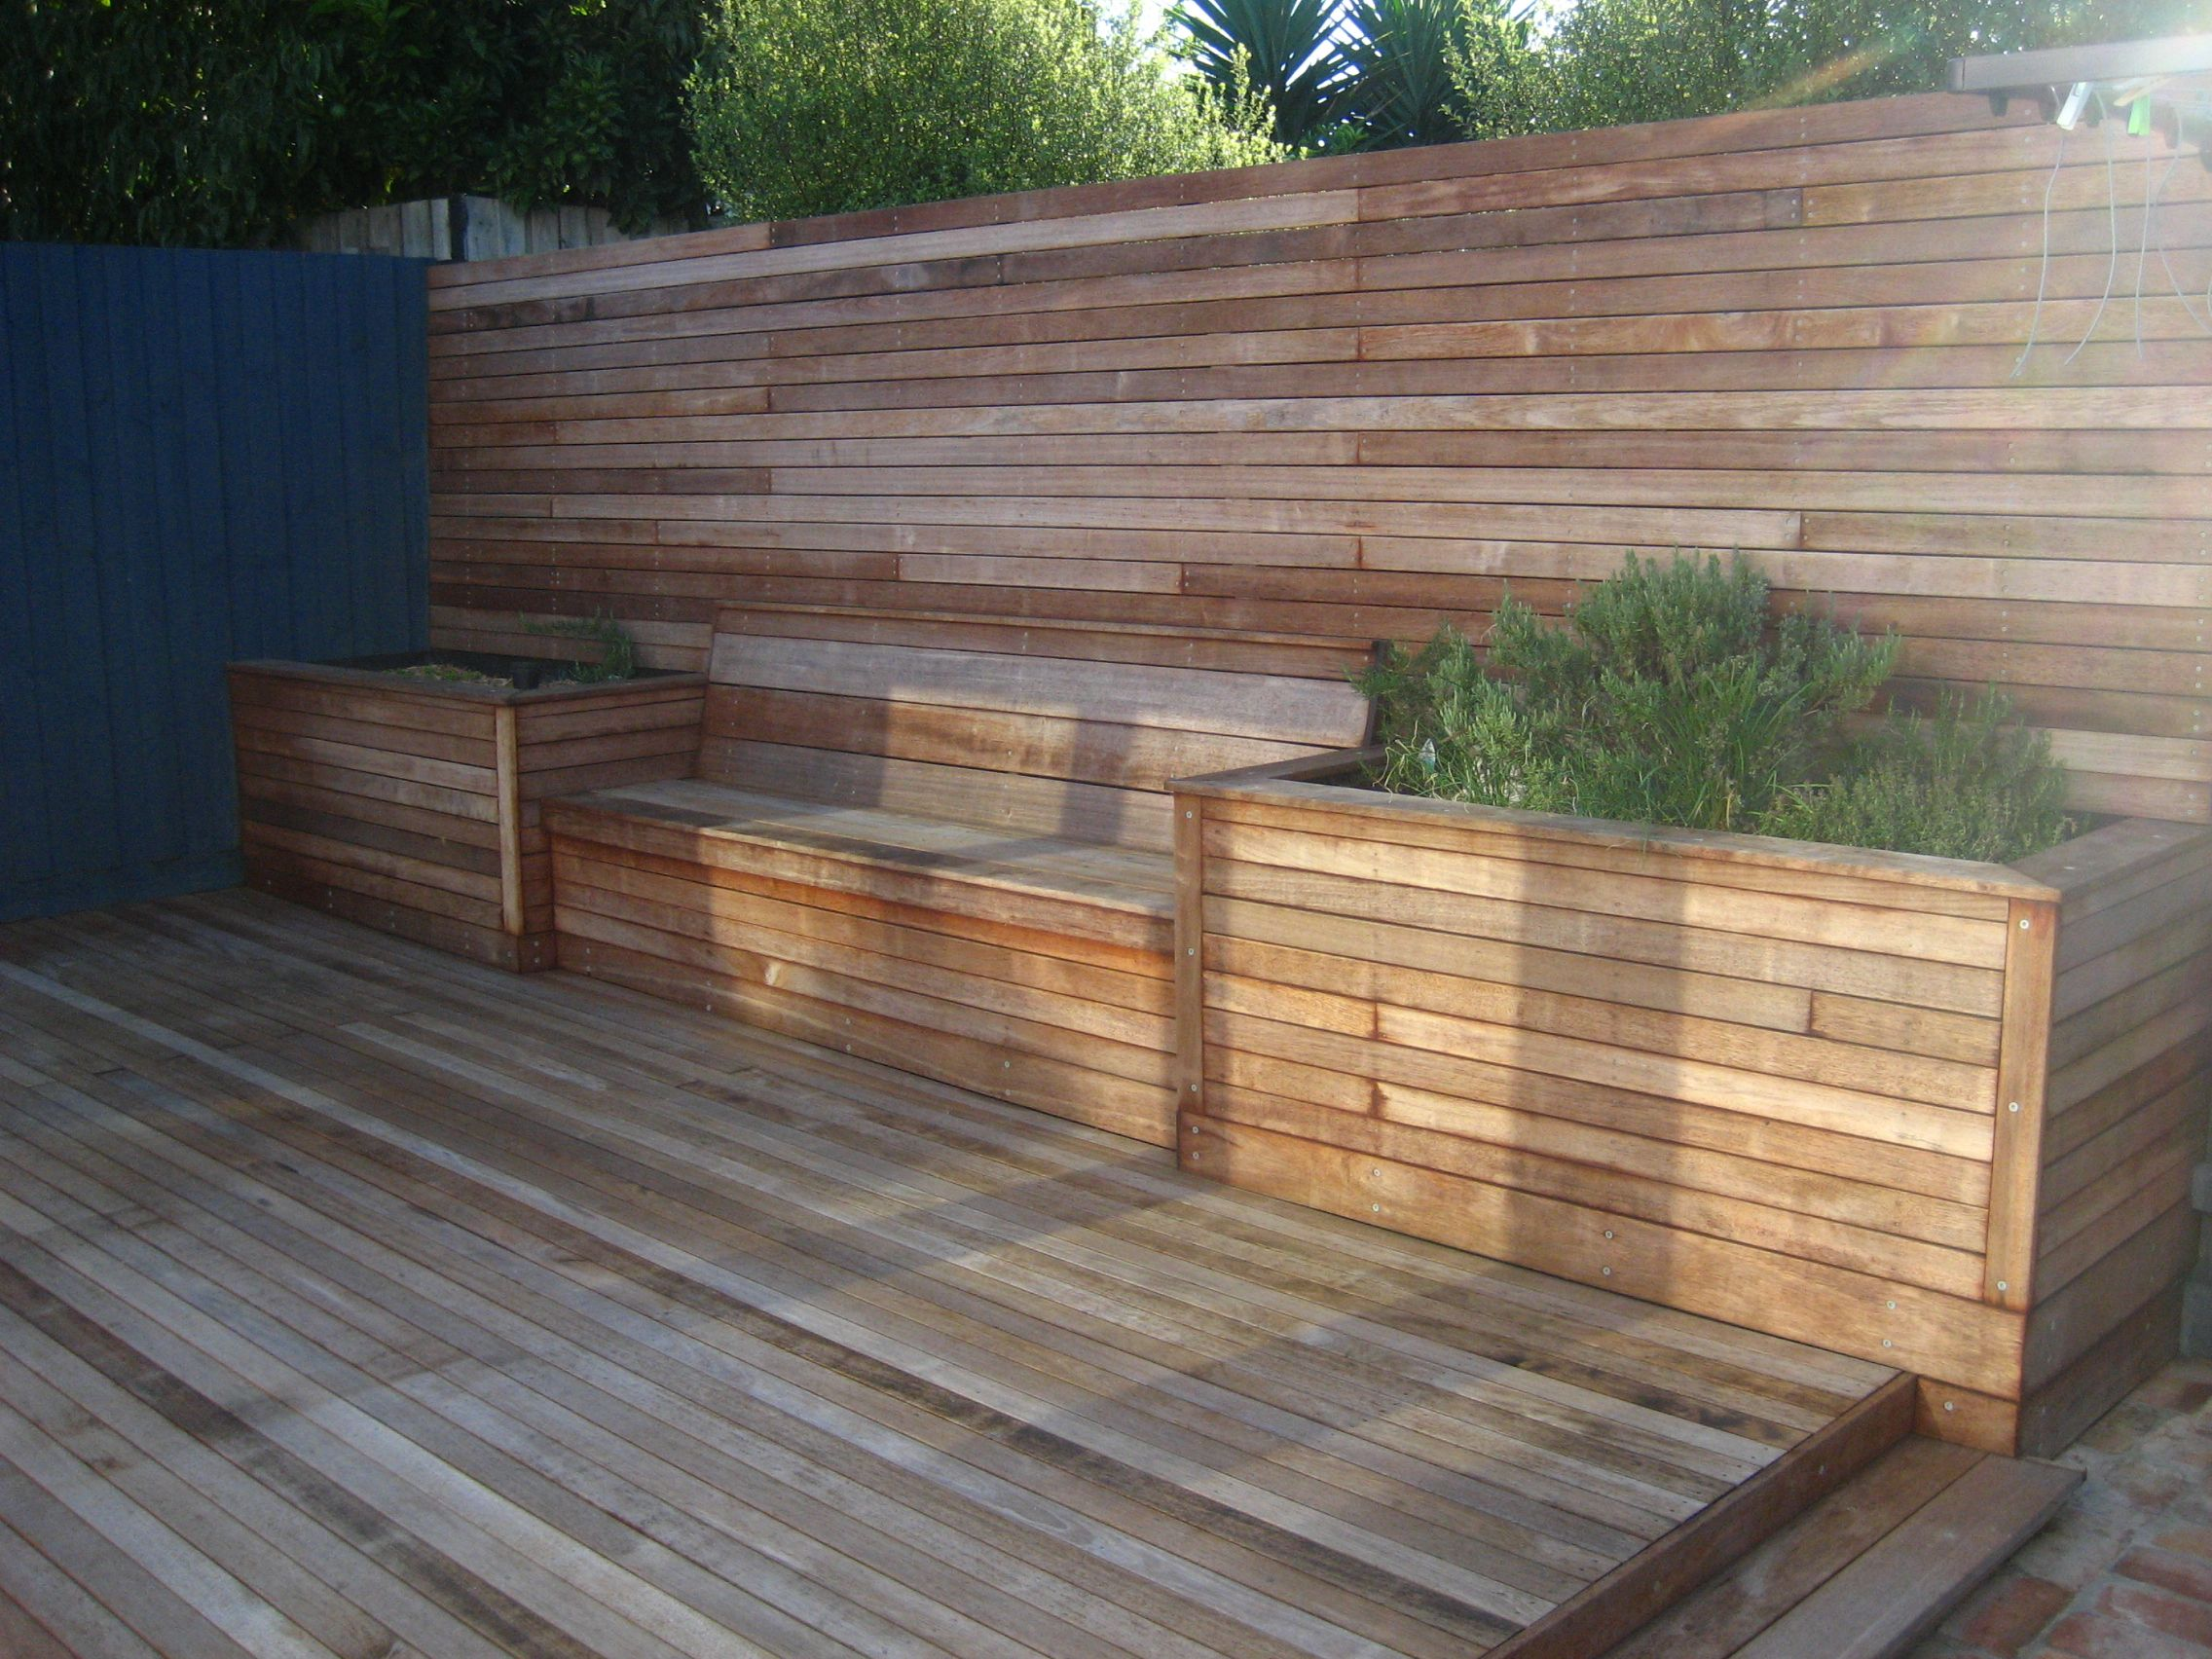 Timber Seating Area With Matching Decking And Raised